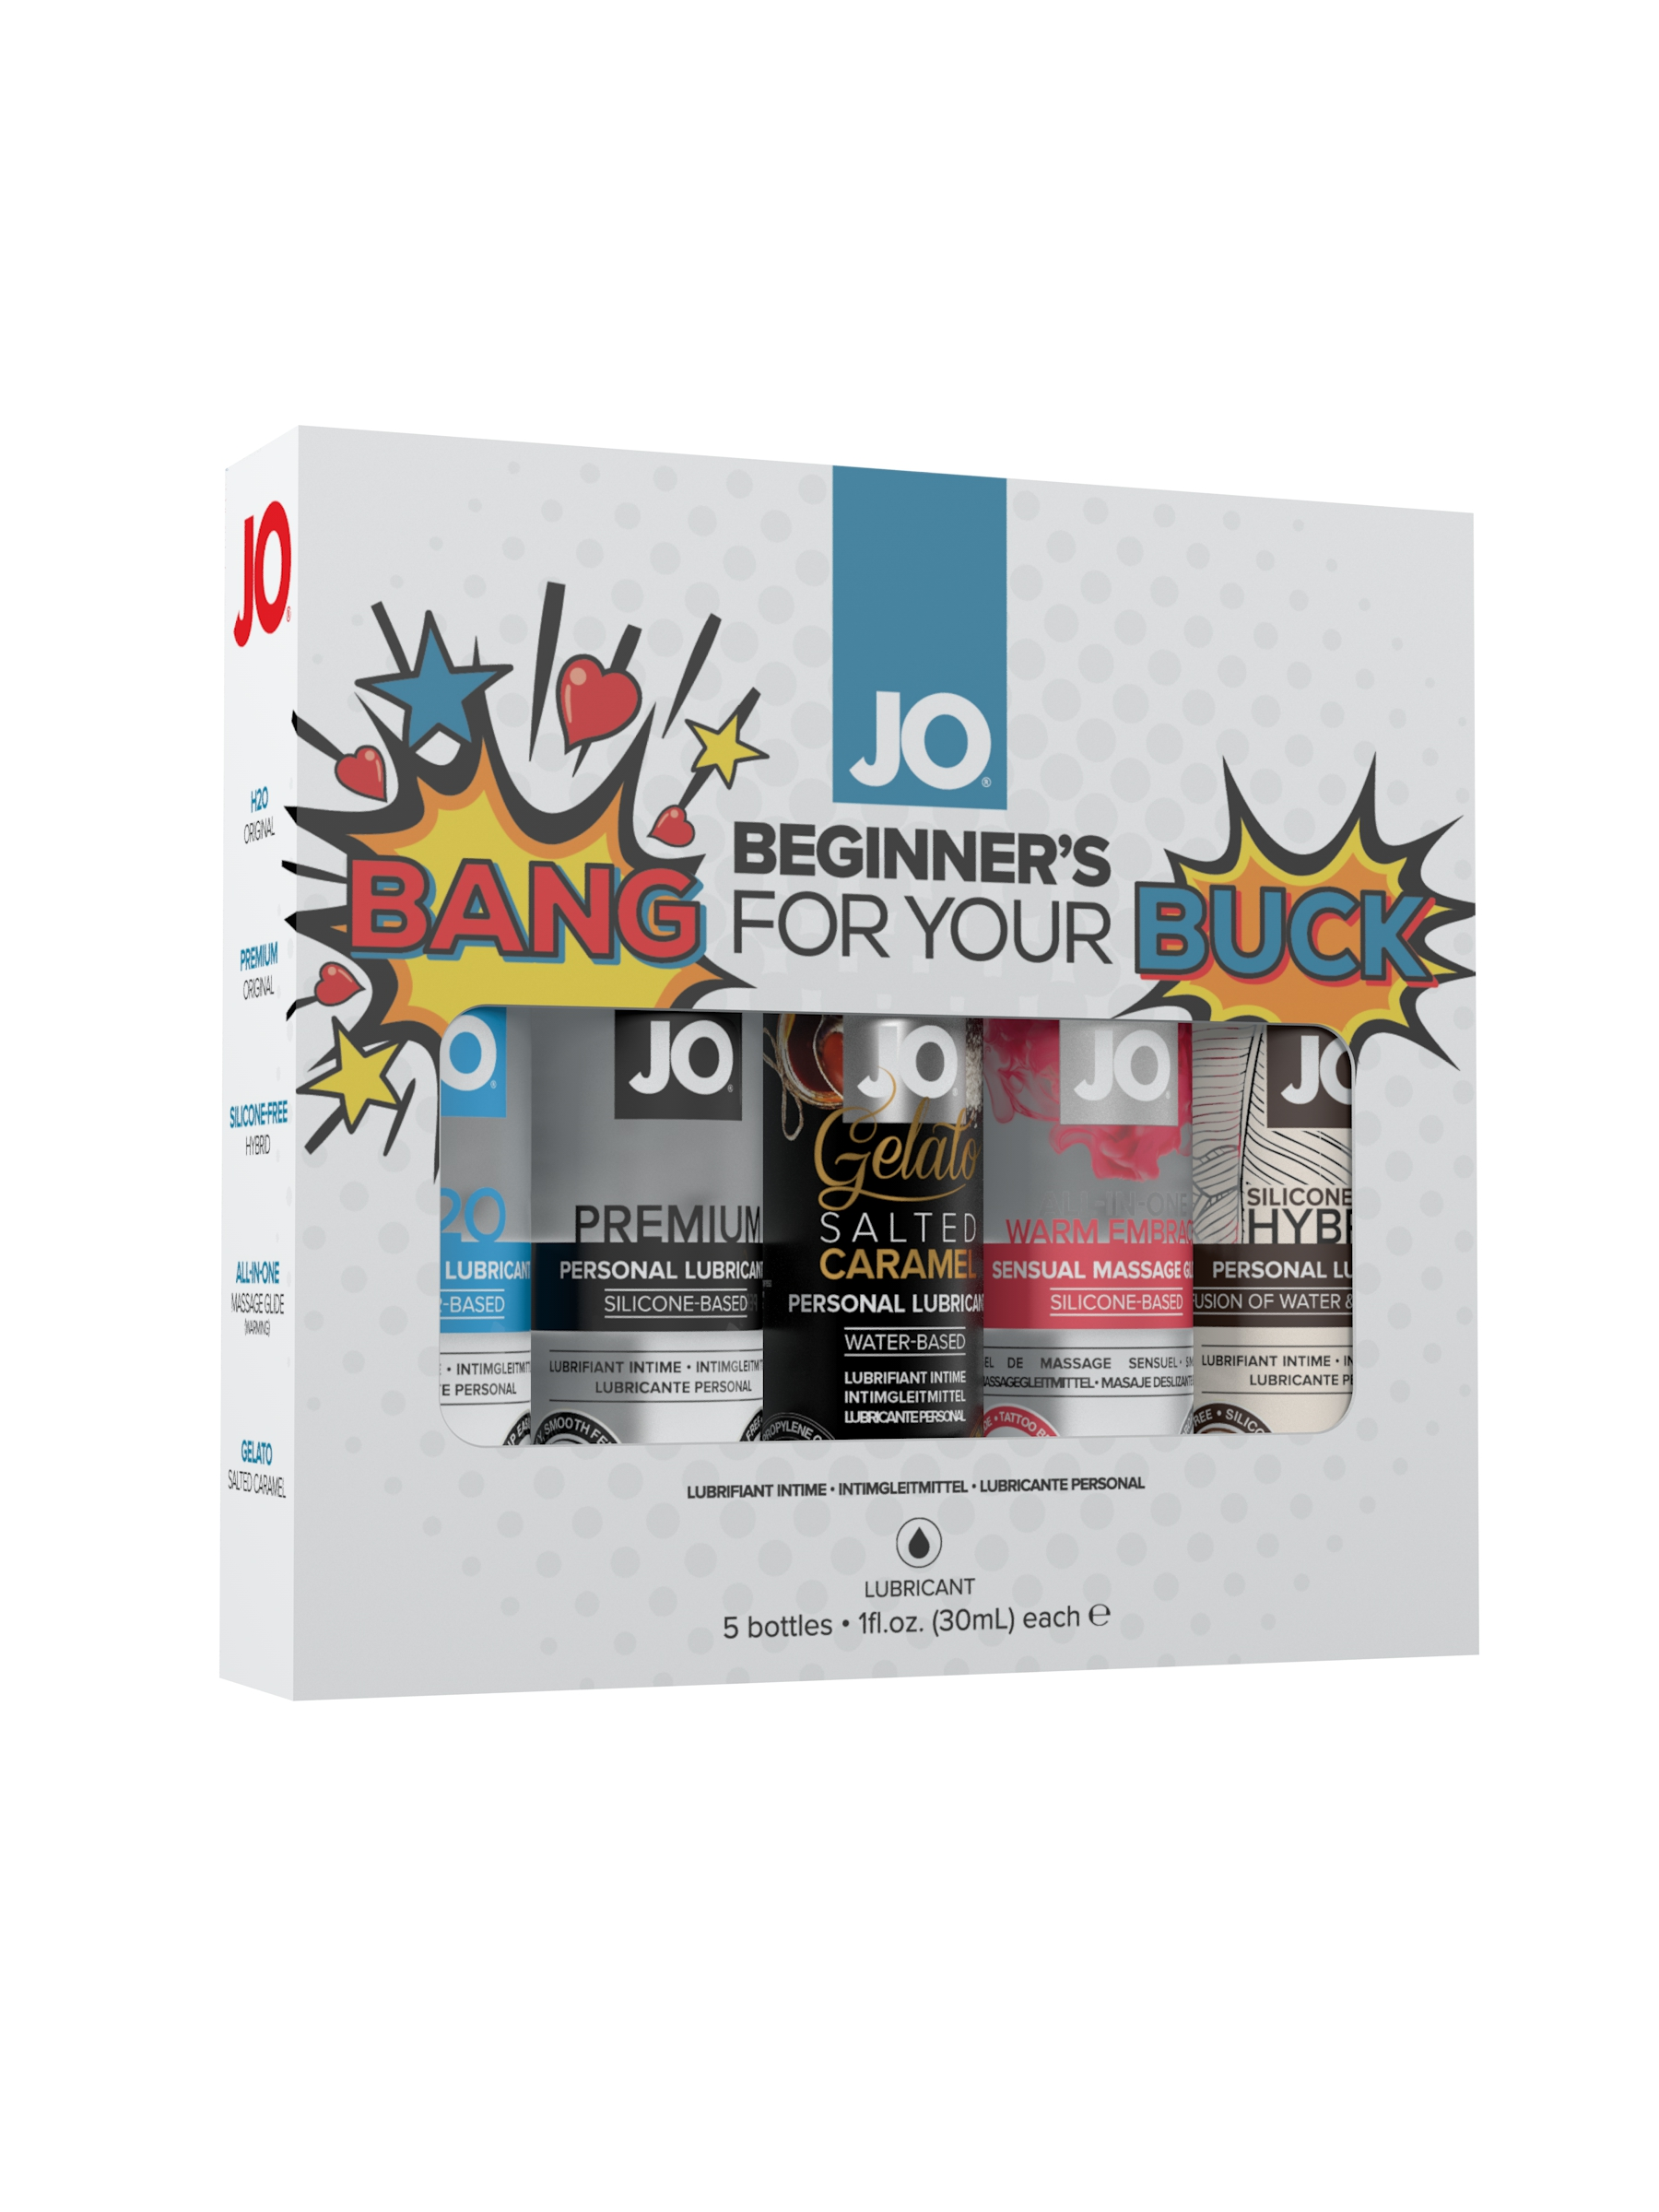 10622 - 4F0622 R0 JO Beginners Bang For Your Buck Gift Set Box A.jpg